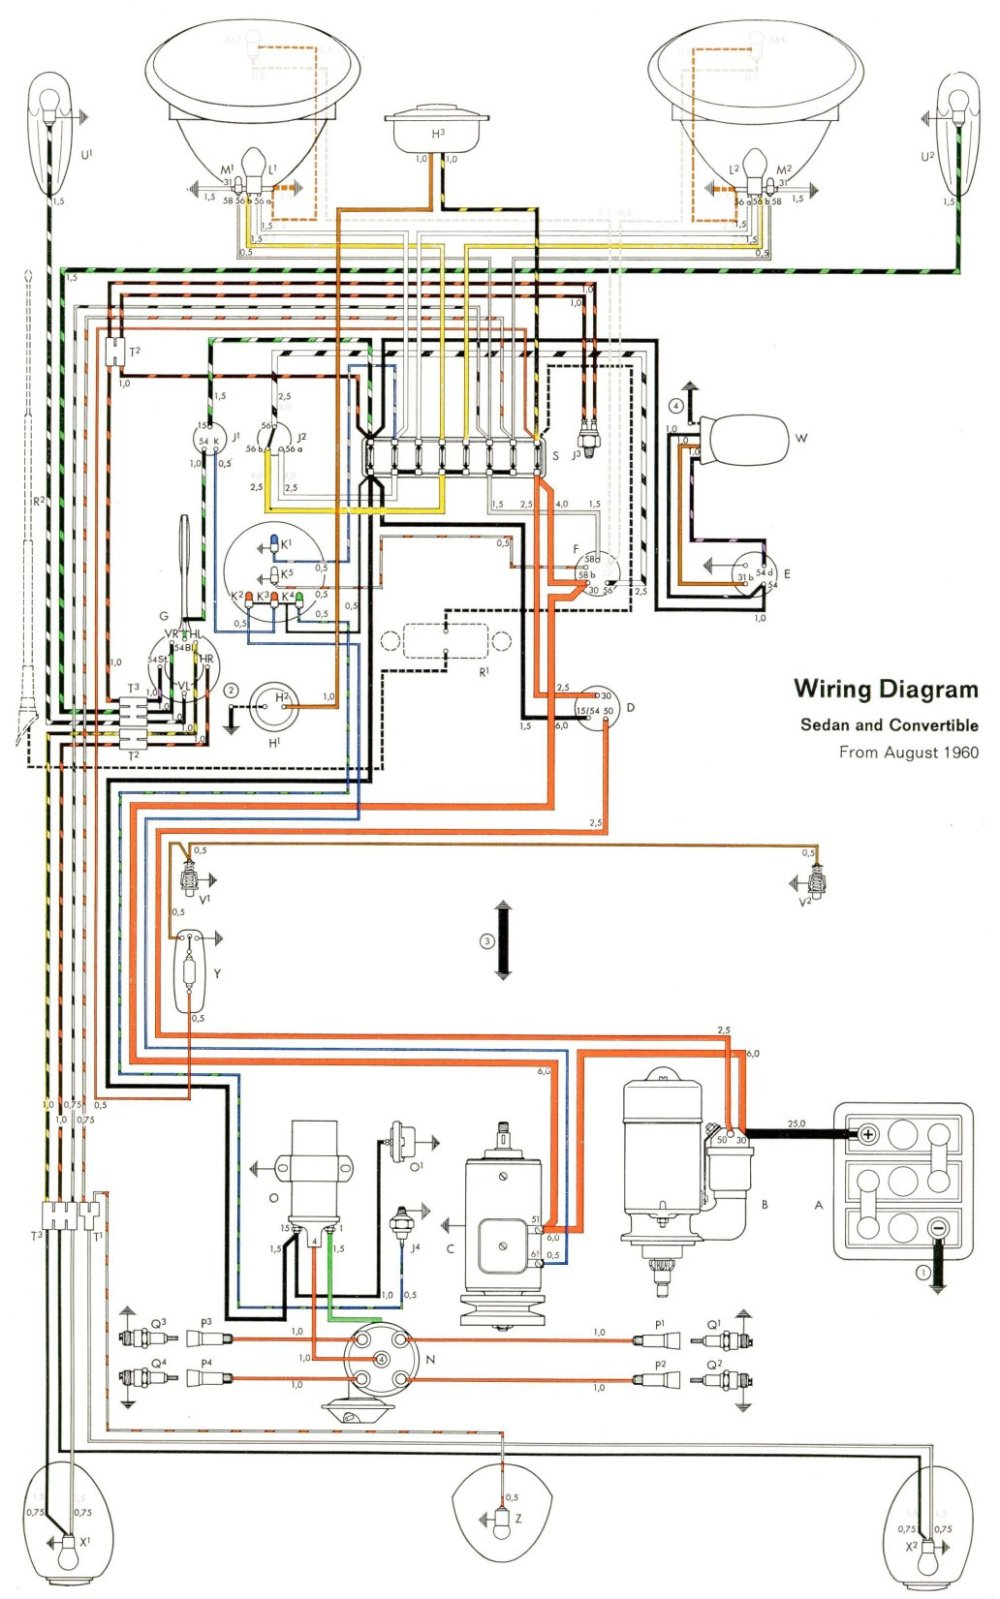 medium resolution of thesamba com type 1 wiring diagrams 1969 amc wiring diagram 1969 vw wiring diagram